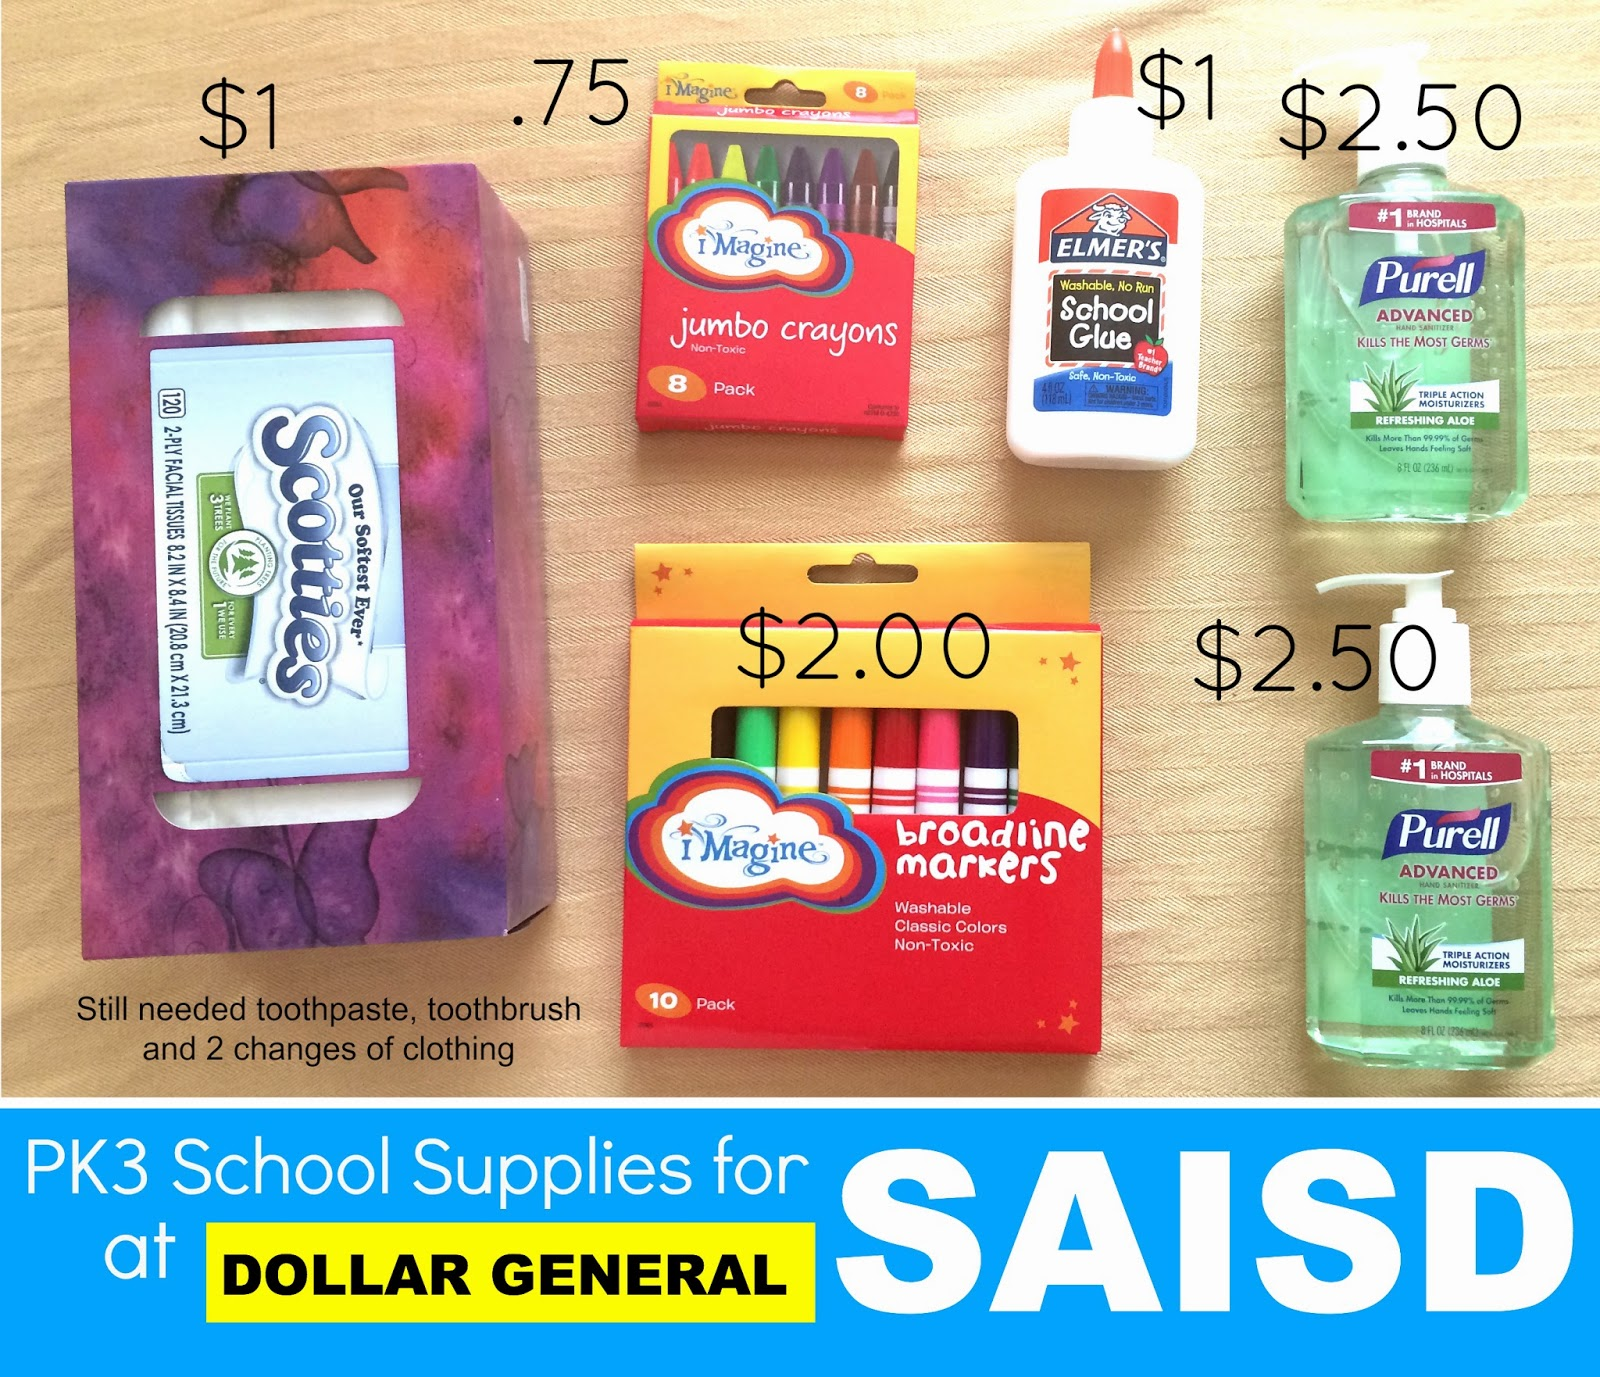 PK3 School Supplies for SAISD at Dollar General